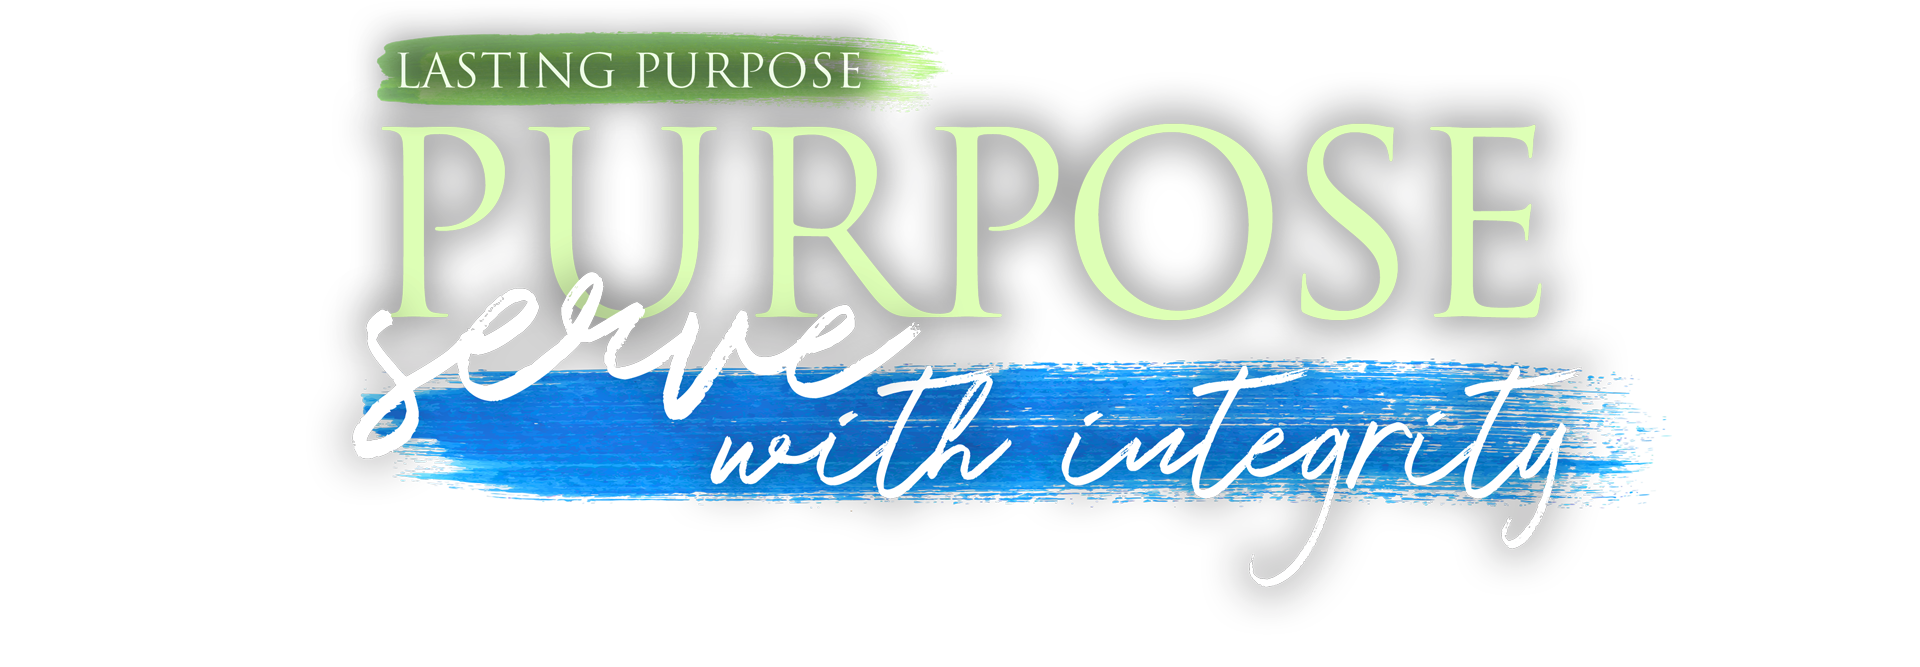 Lasting Purpose. Serve with Integrity